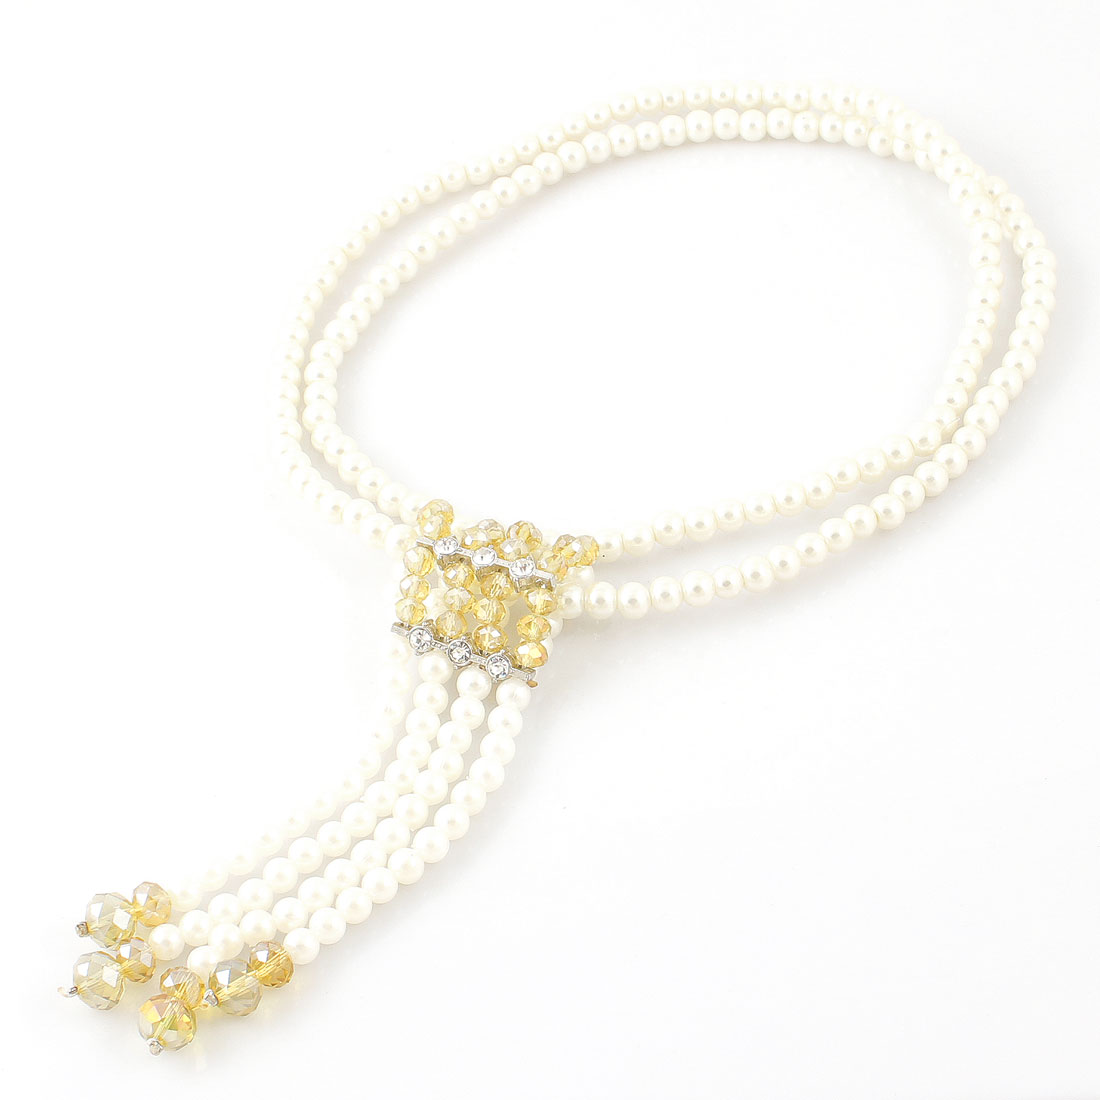 Lady Plastic Crystal Decor Yellow White Beads Dangling Sweater Necklace